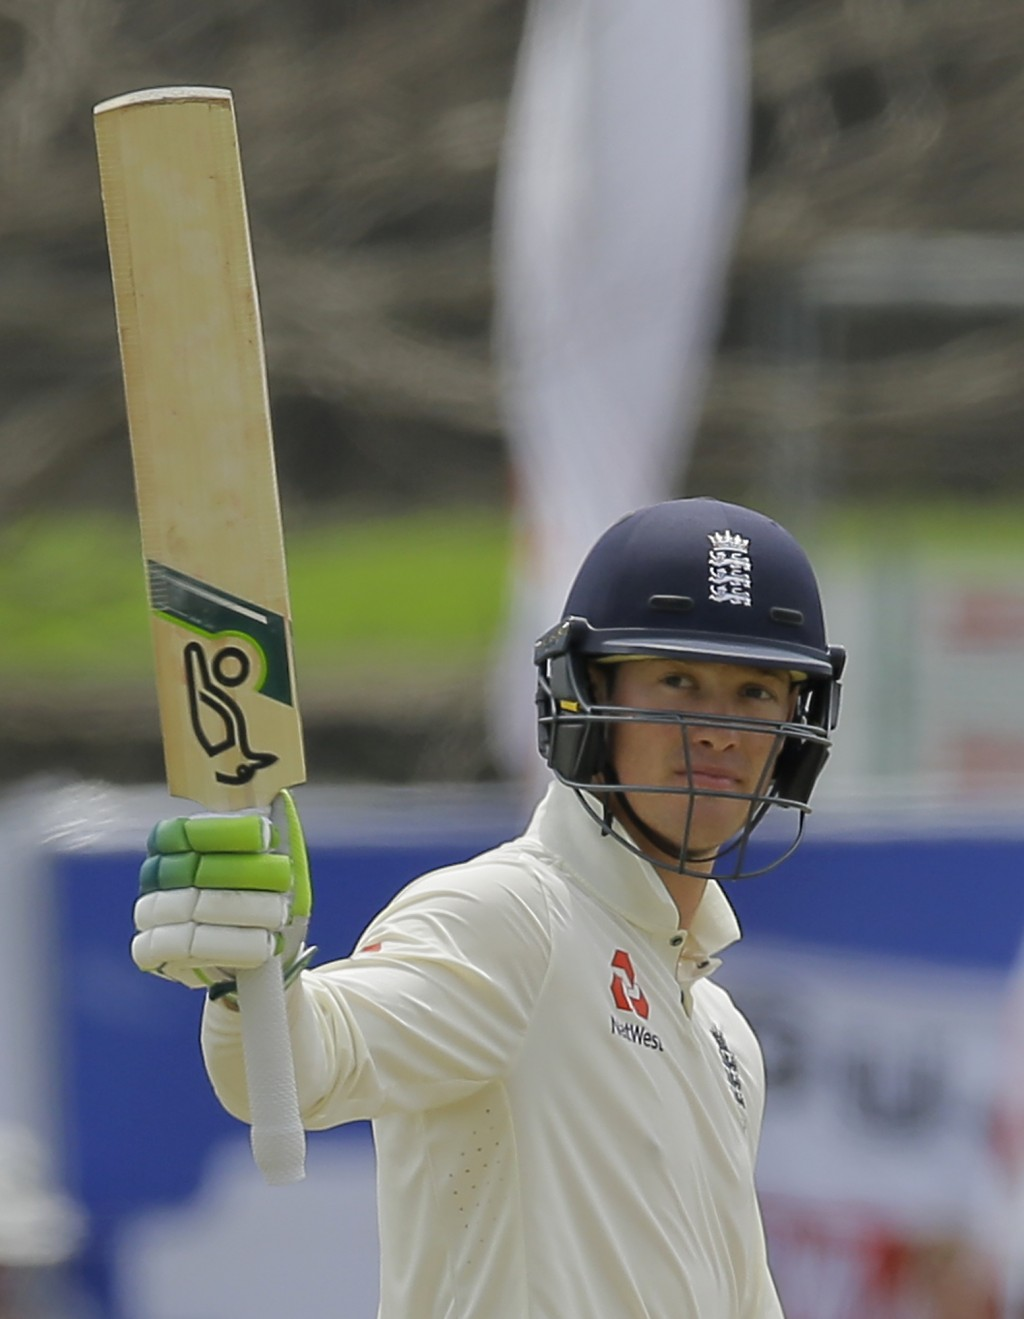 England's Keaton Jennings celebrates scoring a half century during the third day of the first test cricket match between Sri Lanka and England in Gall...